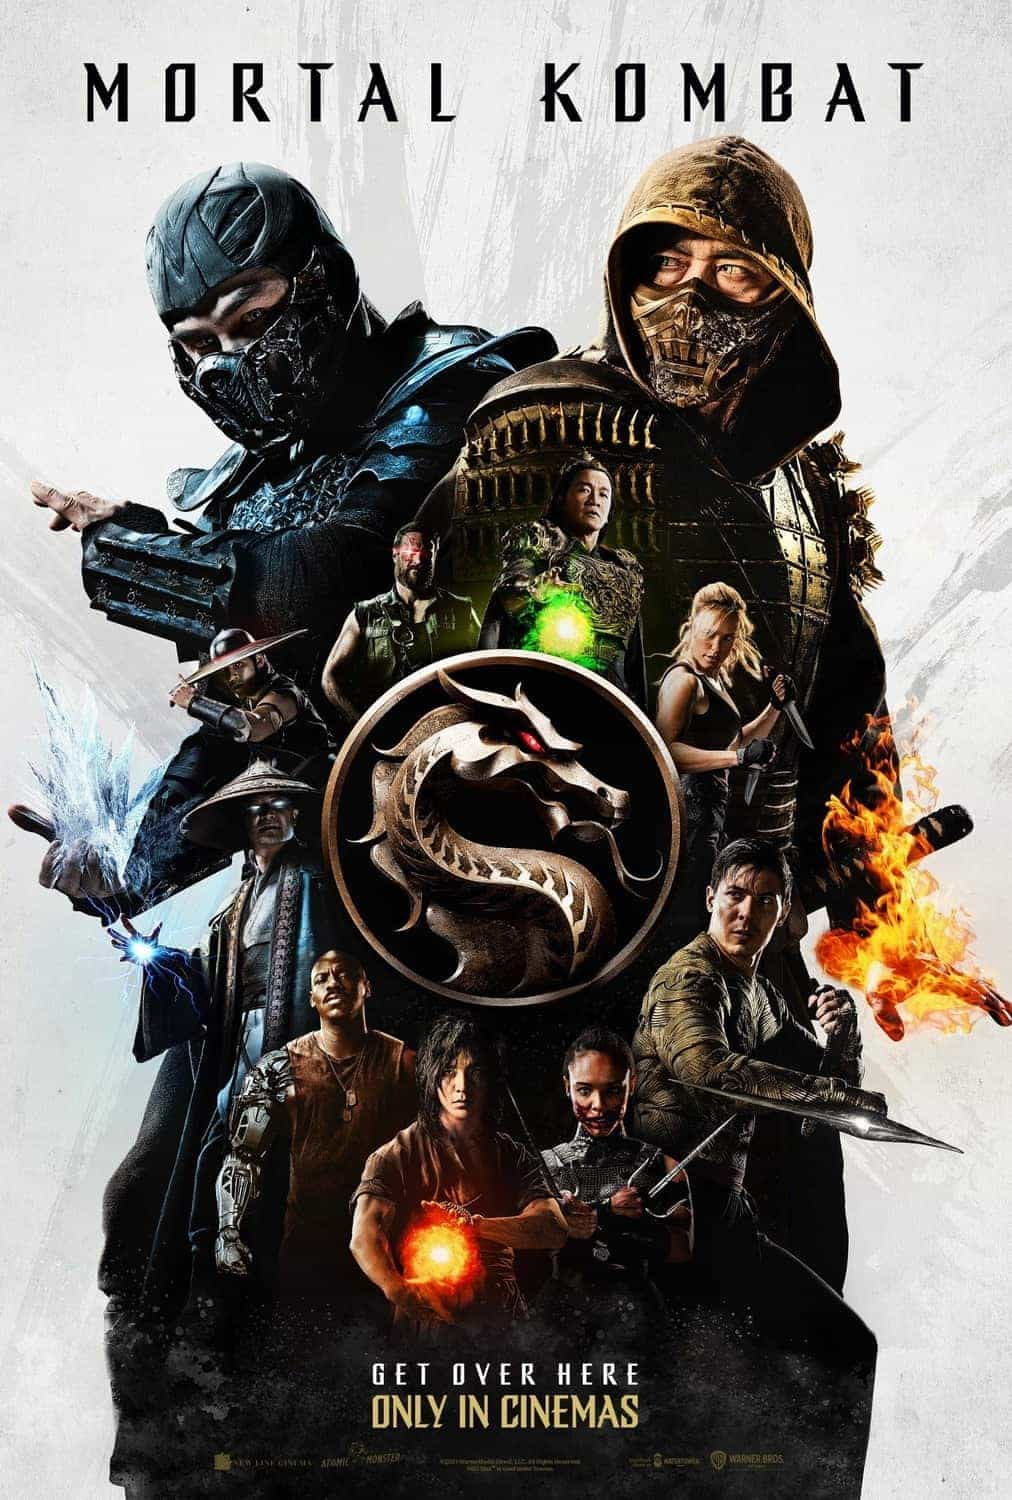 New trailer and poster for the 2021 movie version of Mortal Kombat starring Jessica McNamee - movie release date 16th April 2021